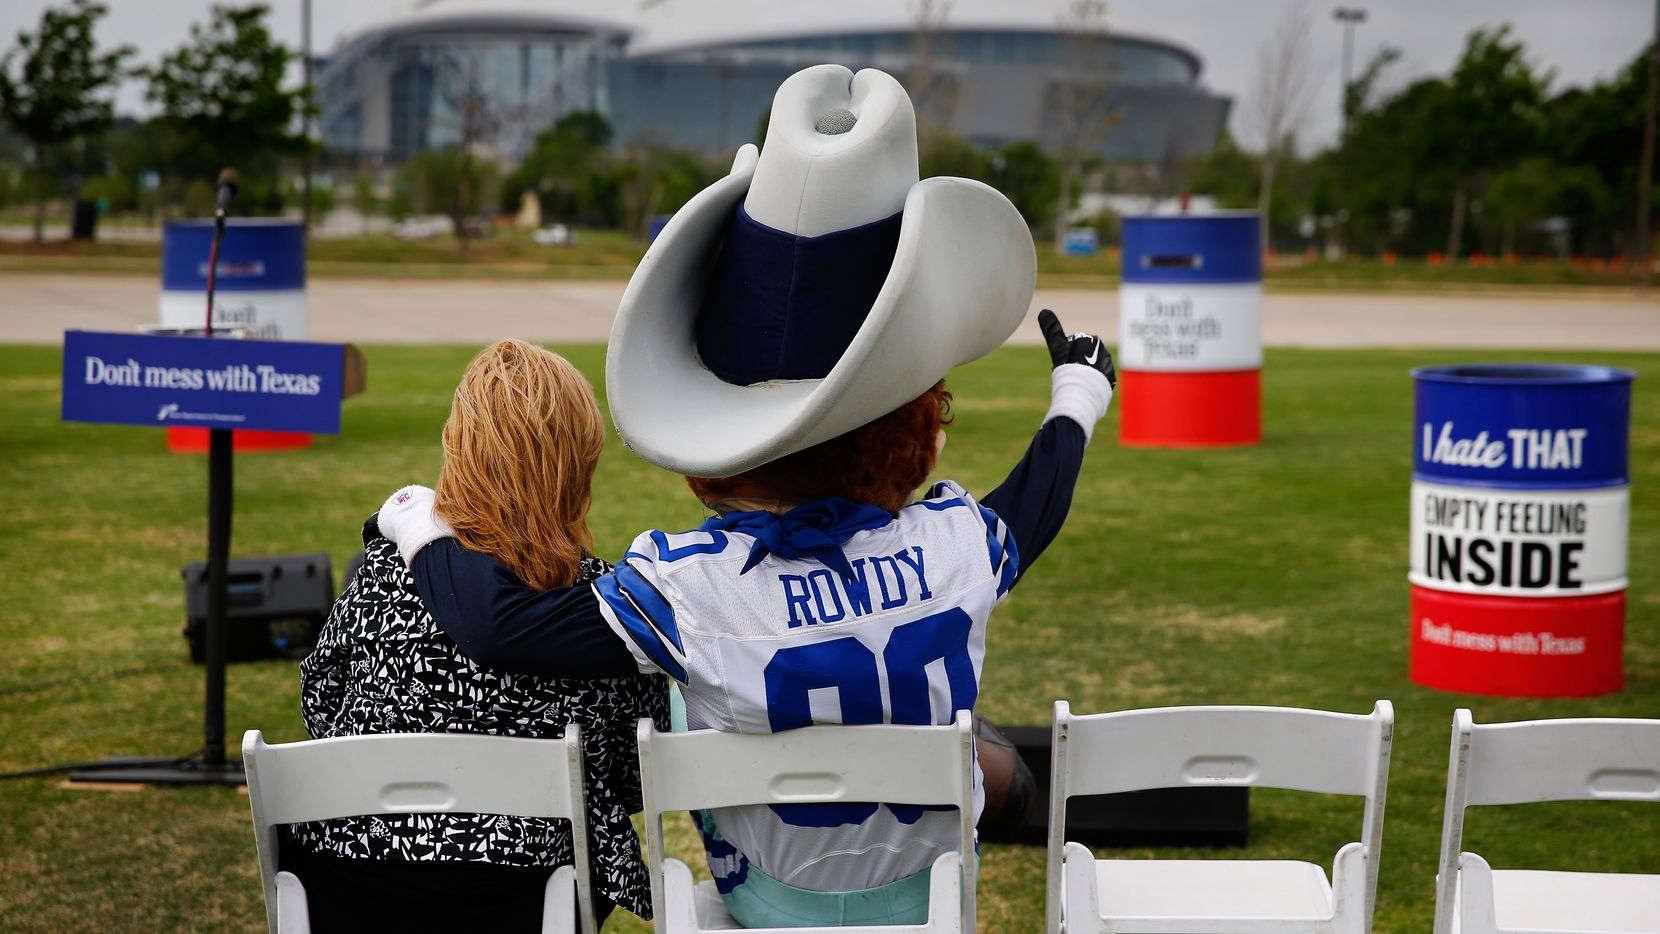 Dallas Cowboys mascot Rowdy hung out with TxDOT's Brenda Flores-Dollar before a Don't Mess With Texas event near the Cowboys' stadium in April.